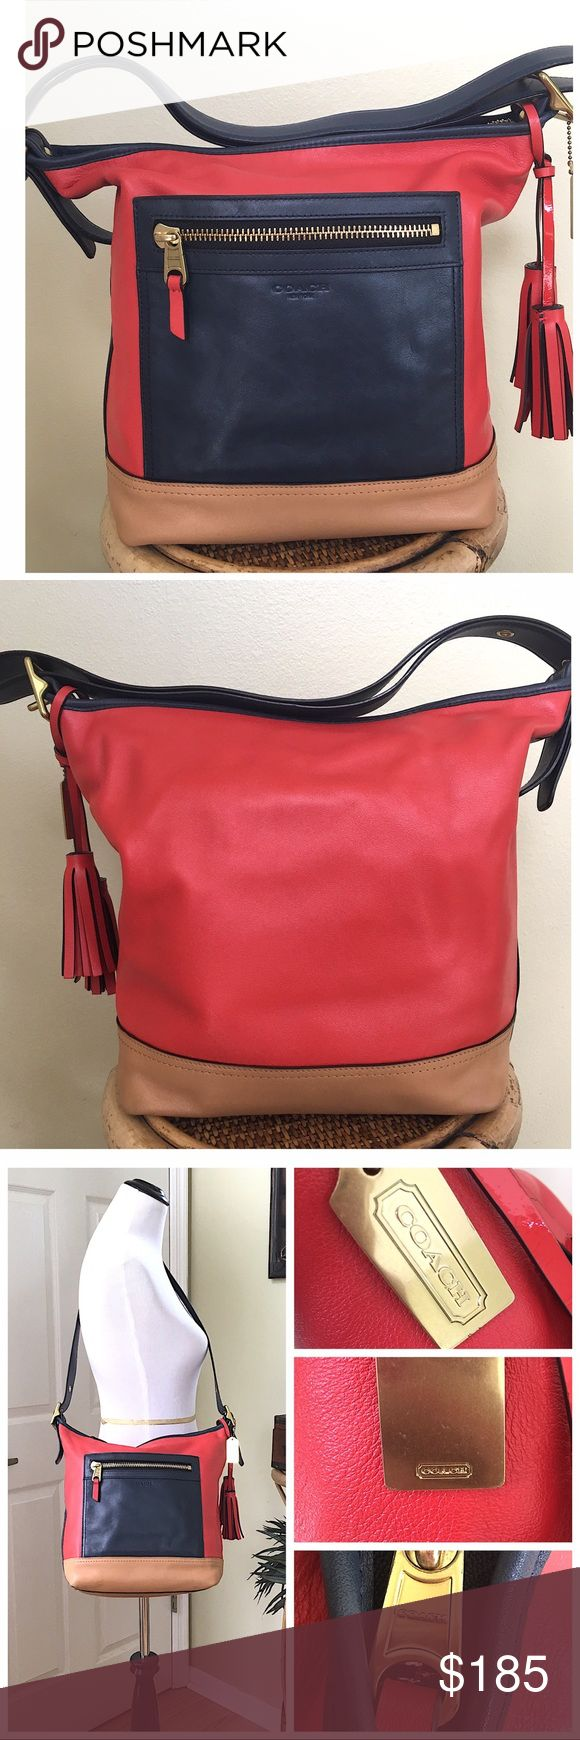 "COACH LEGACY COLORBLOCK DUFFLE BAG Gorgeous bag.  Gently used.  Minor wear to the corners and one small ink mark on the side exterior leather (see pics) Clean interior and exterior.  This bag can be worn as a shoulder bag or crossbody.                                           ·  Single strap with 18.75"" drop for crossbody wear converts to double strap for shoulder wear  ·  Interior zip pocket and cellphone pockets ·  One outside zip pocket and slip pocket ·  Top zipper closure ⏩ALL…"